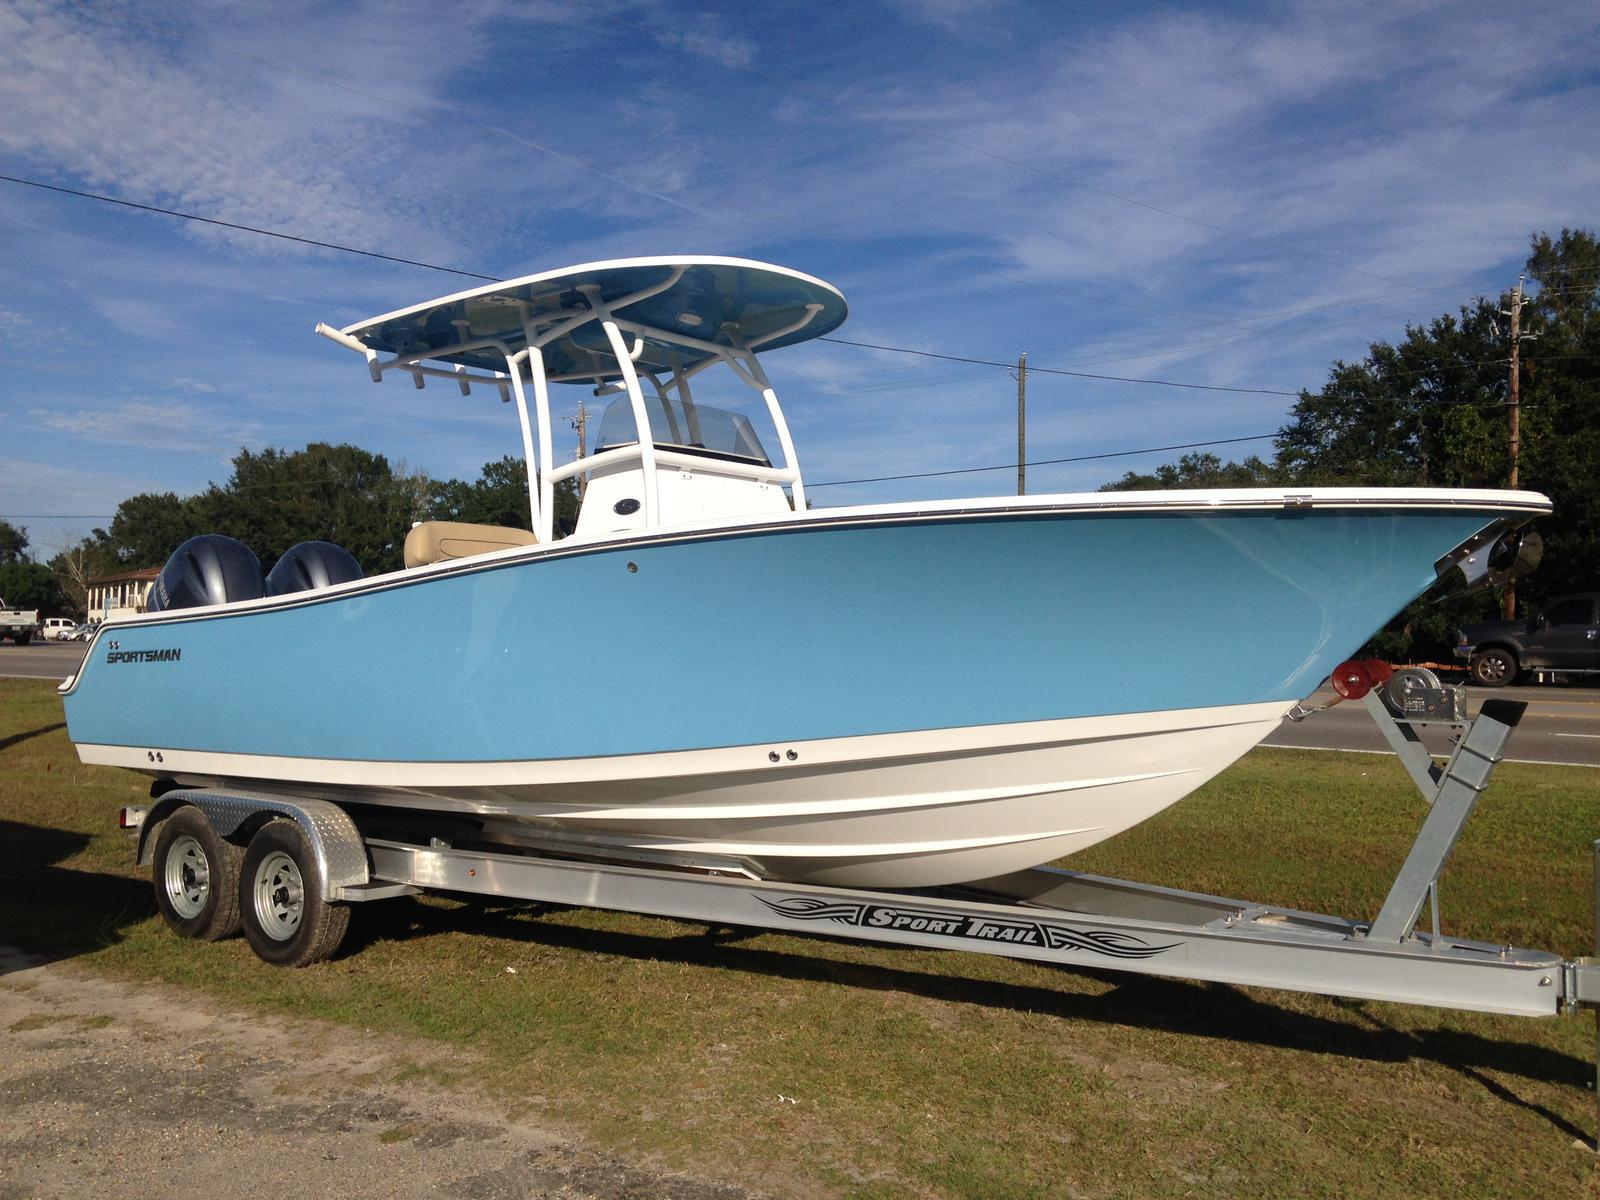 boats sportsman 252 open boat states united center console boating